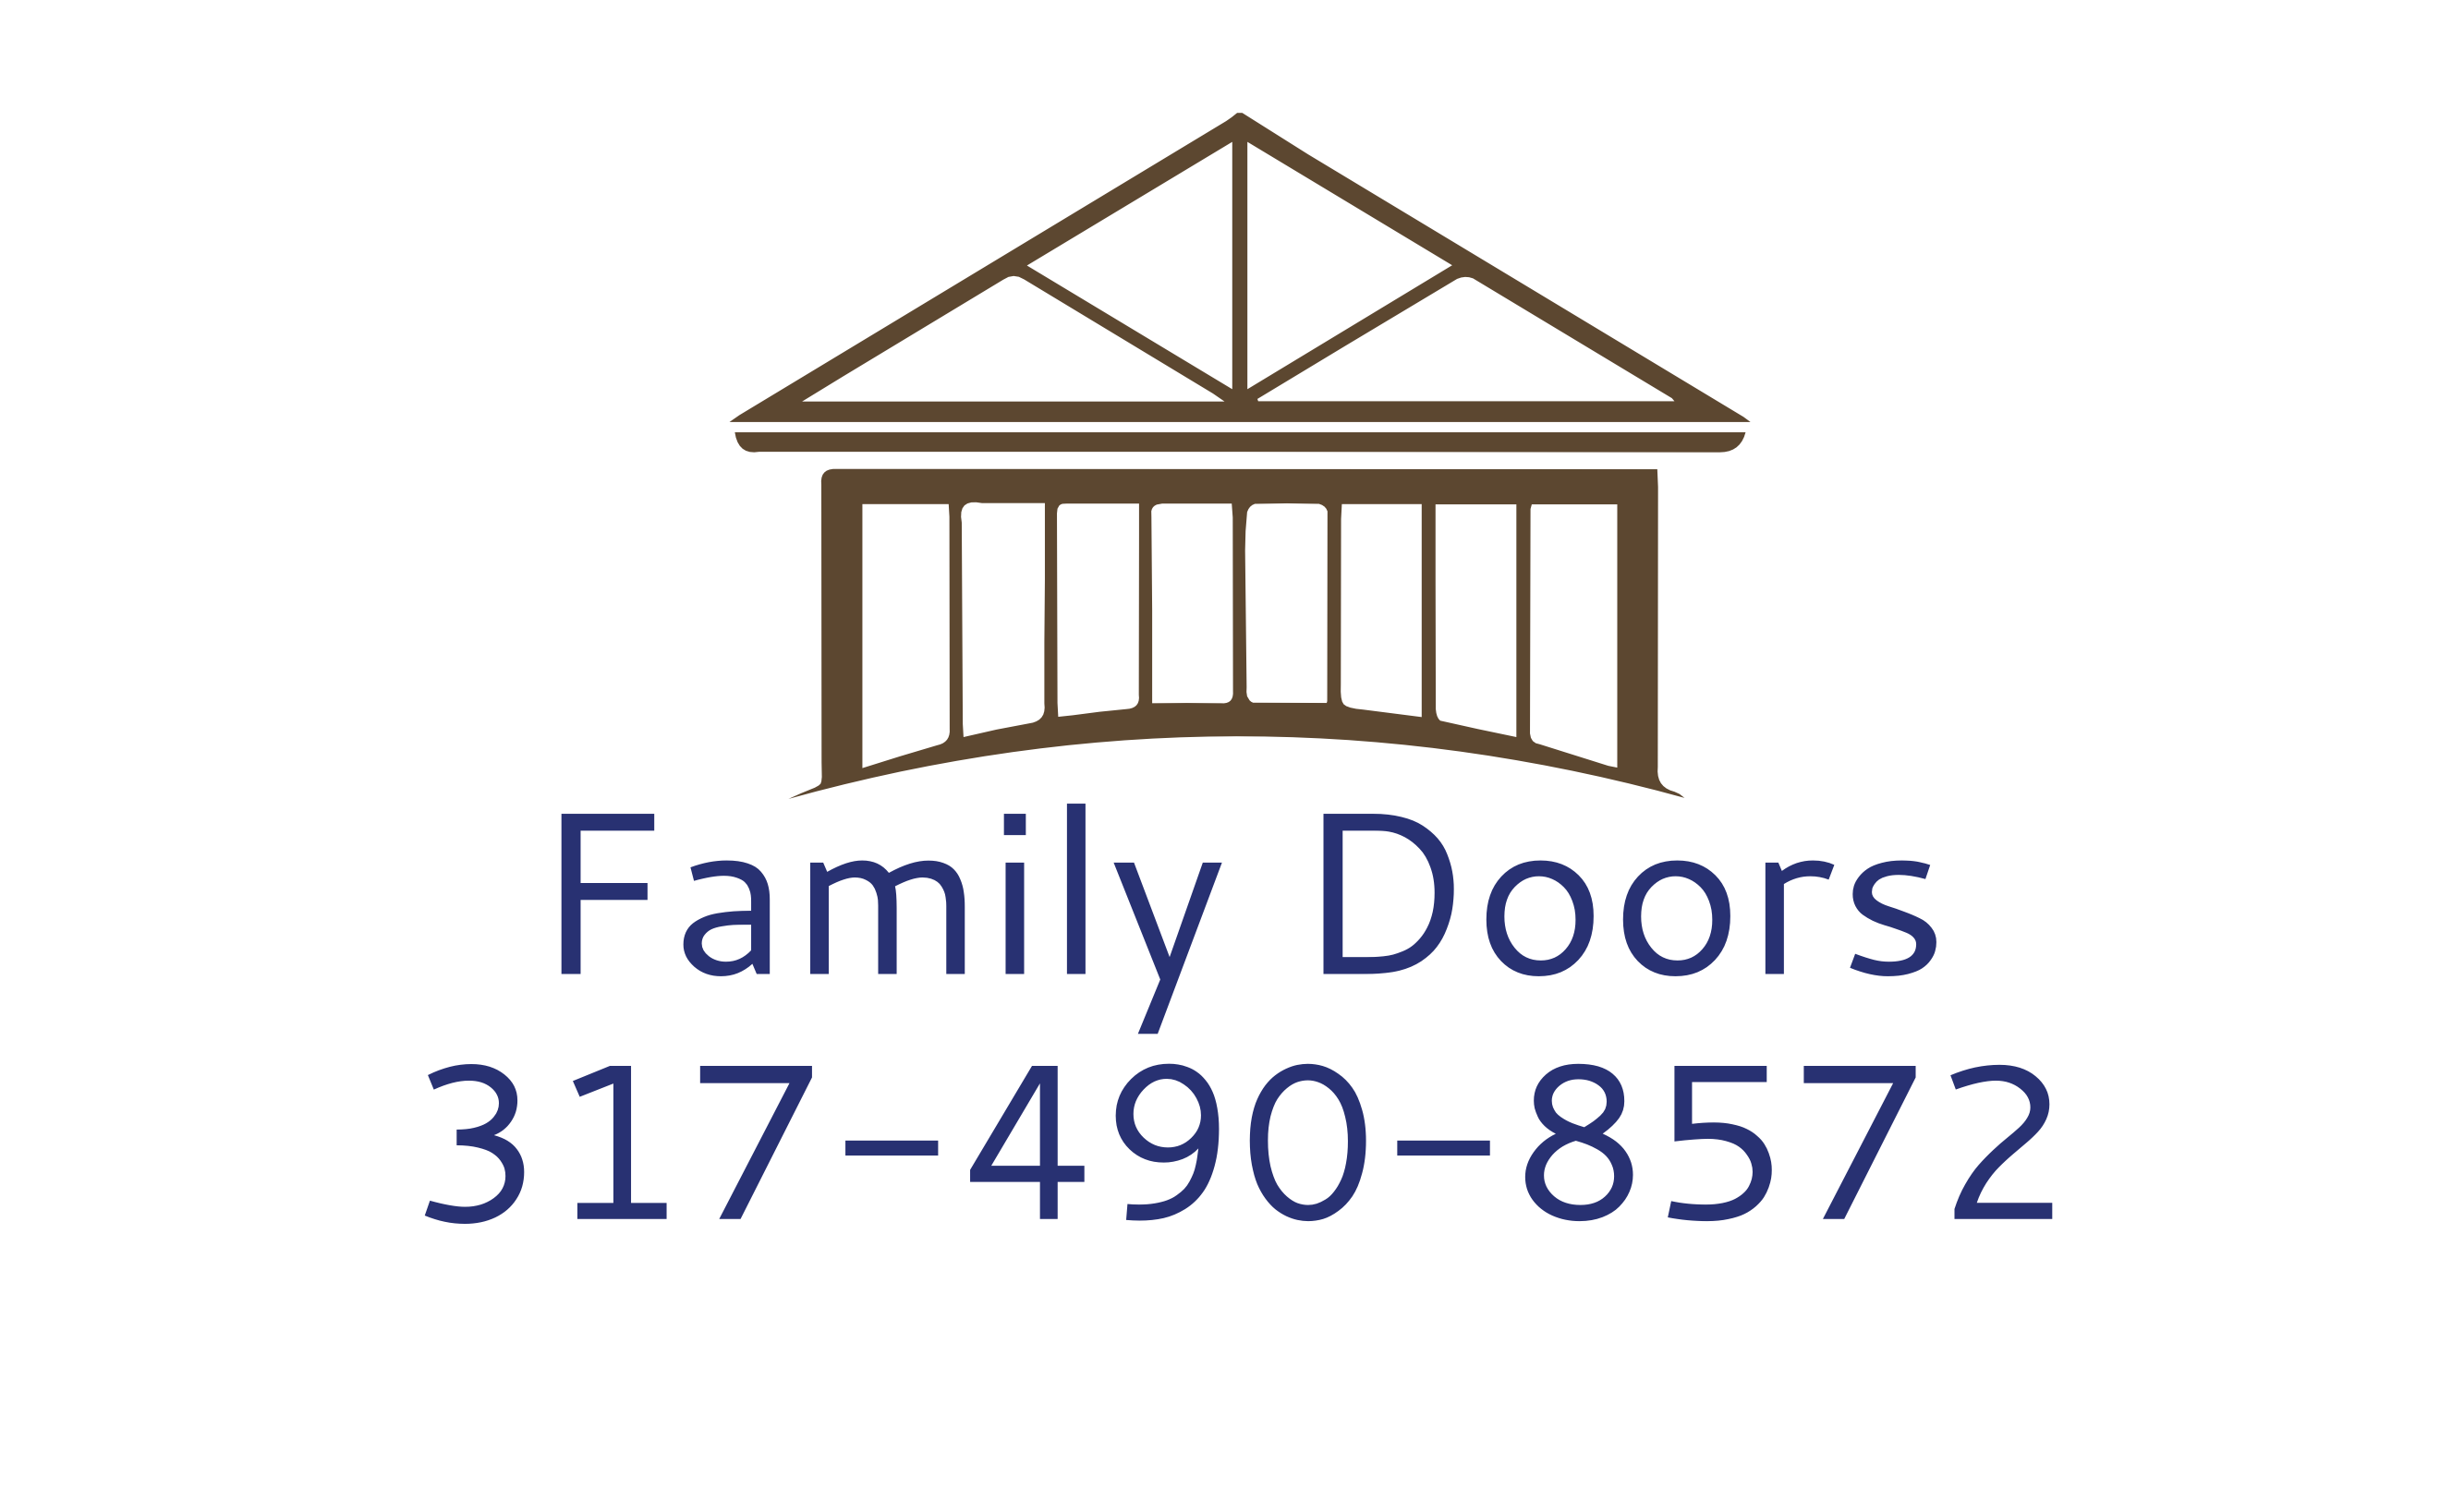 Family Doors LLC